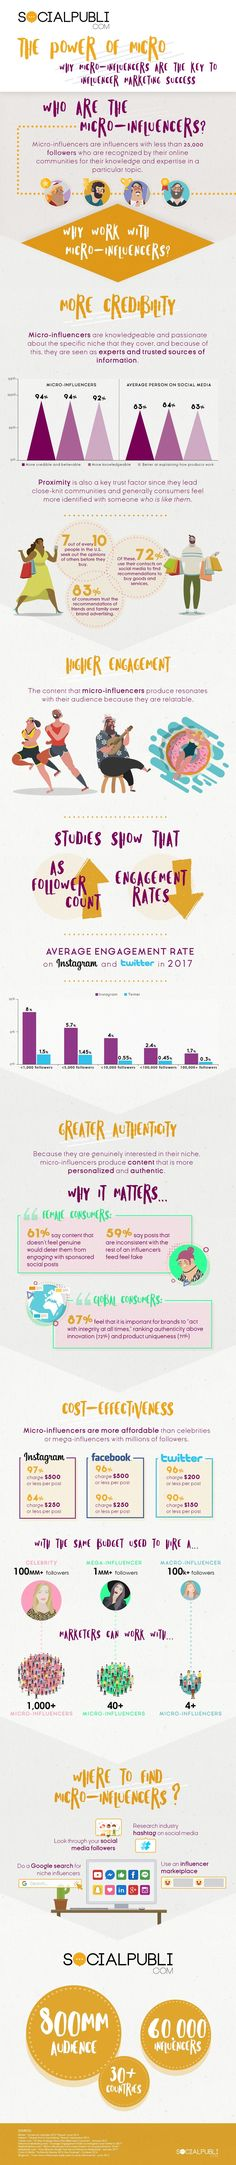 In this infographic you'll discover the four main reasons why micro-influencer marketing is becoming a key ingredient for any successful social media marketing program.